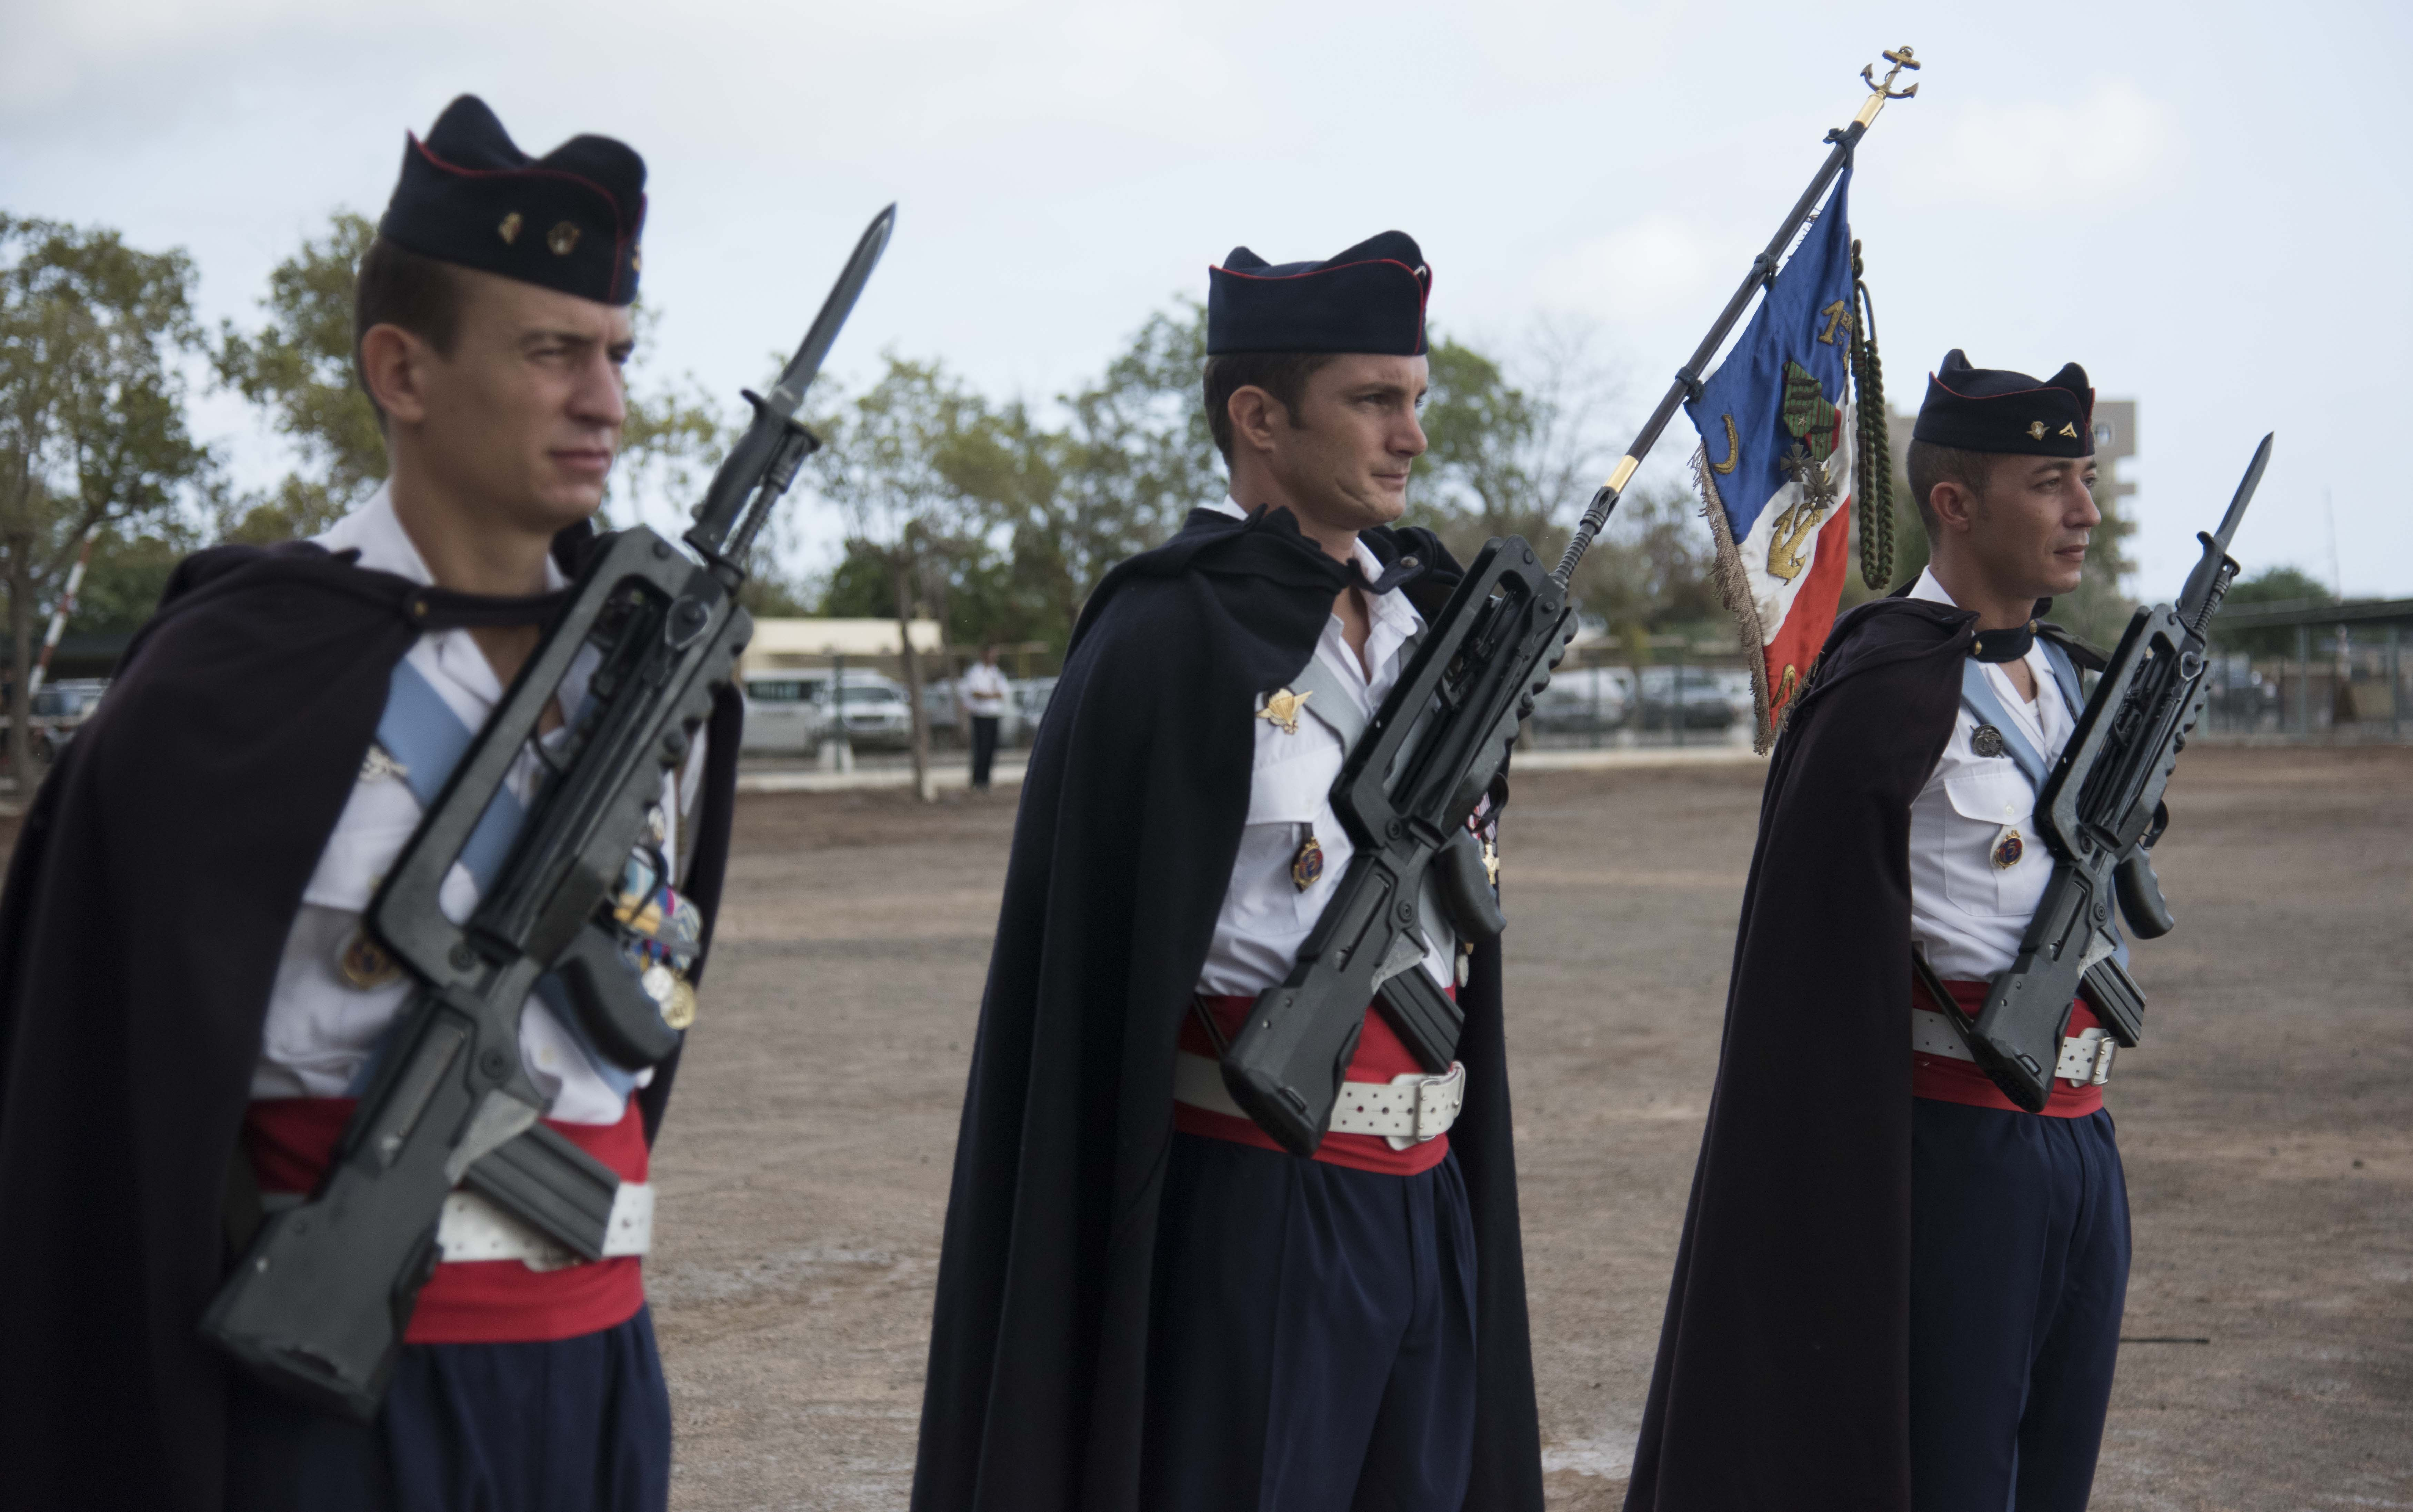 French troops stand guard over the flag of the French Somali Battalion during the Armistice Day ceremony at the French Marine Base, Nov. 11, 2015. Troops from the Horn of Africa and Yemen carried the flag through both world wars.